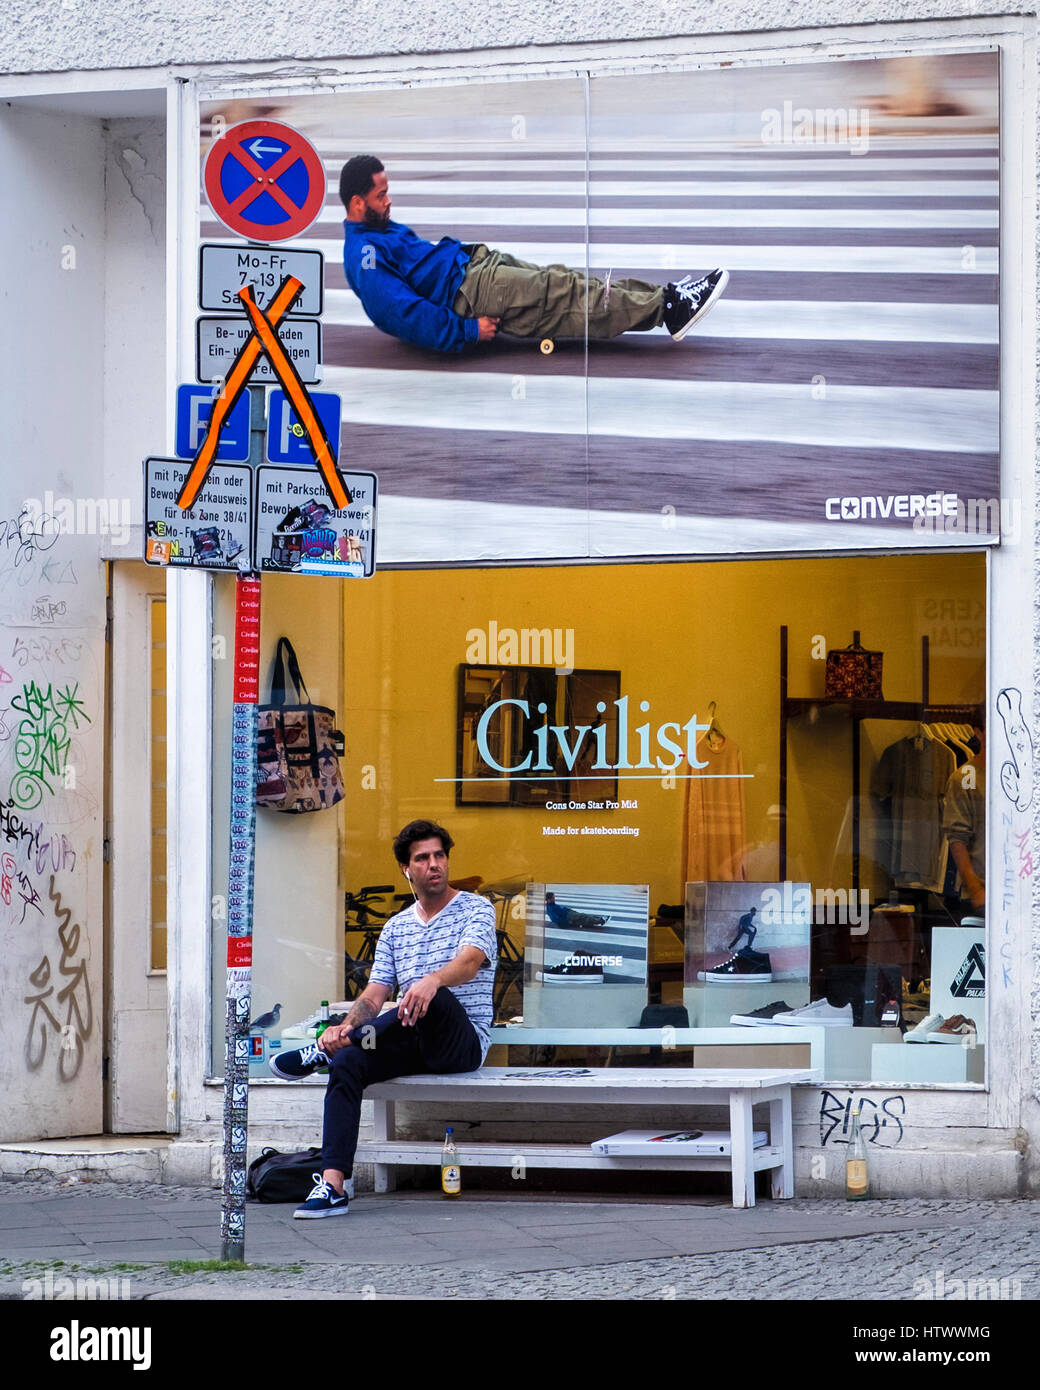 cadf86db0b103e Civilist shop selling Converse trainers and clothing. Exterior  advertisement and display window